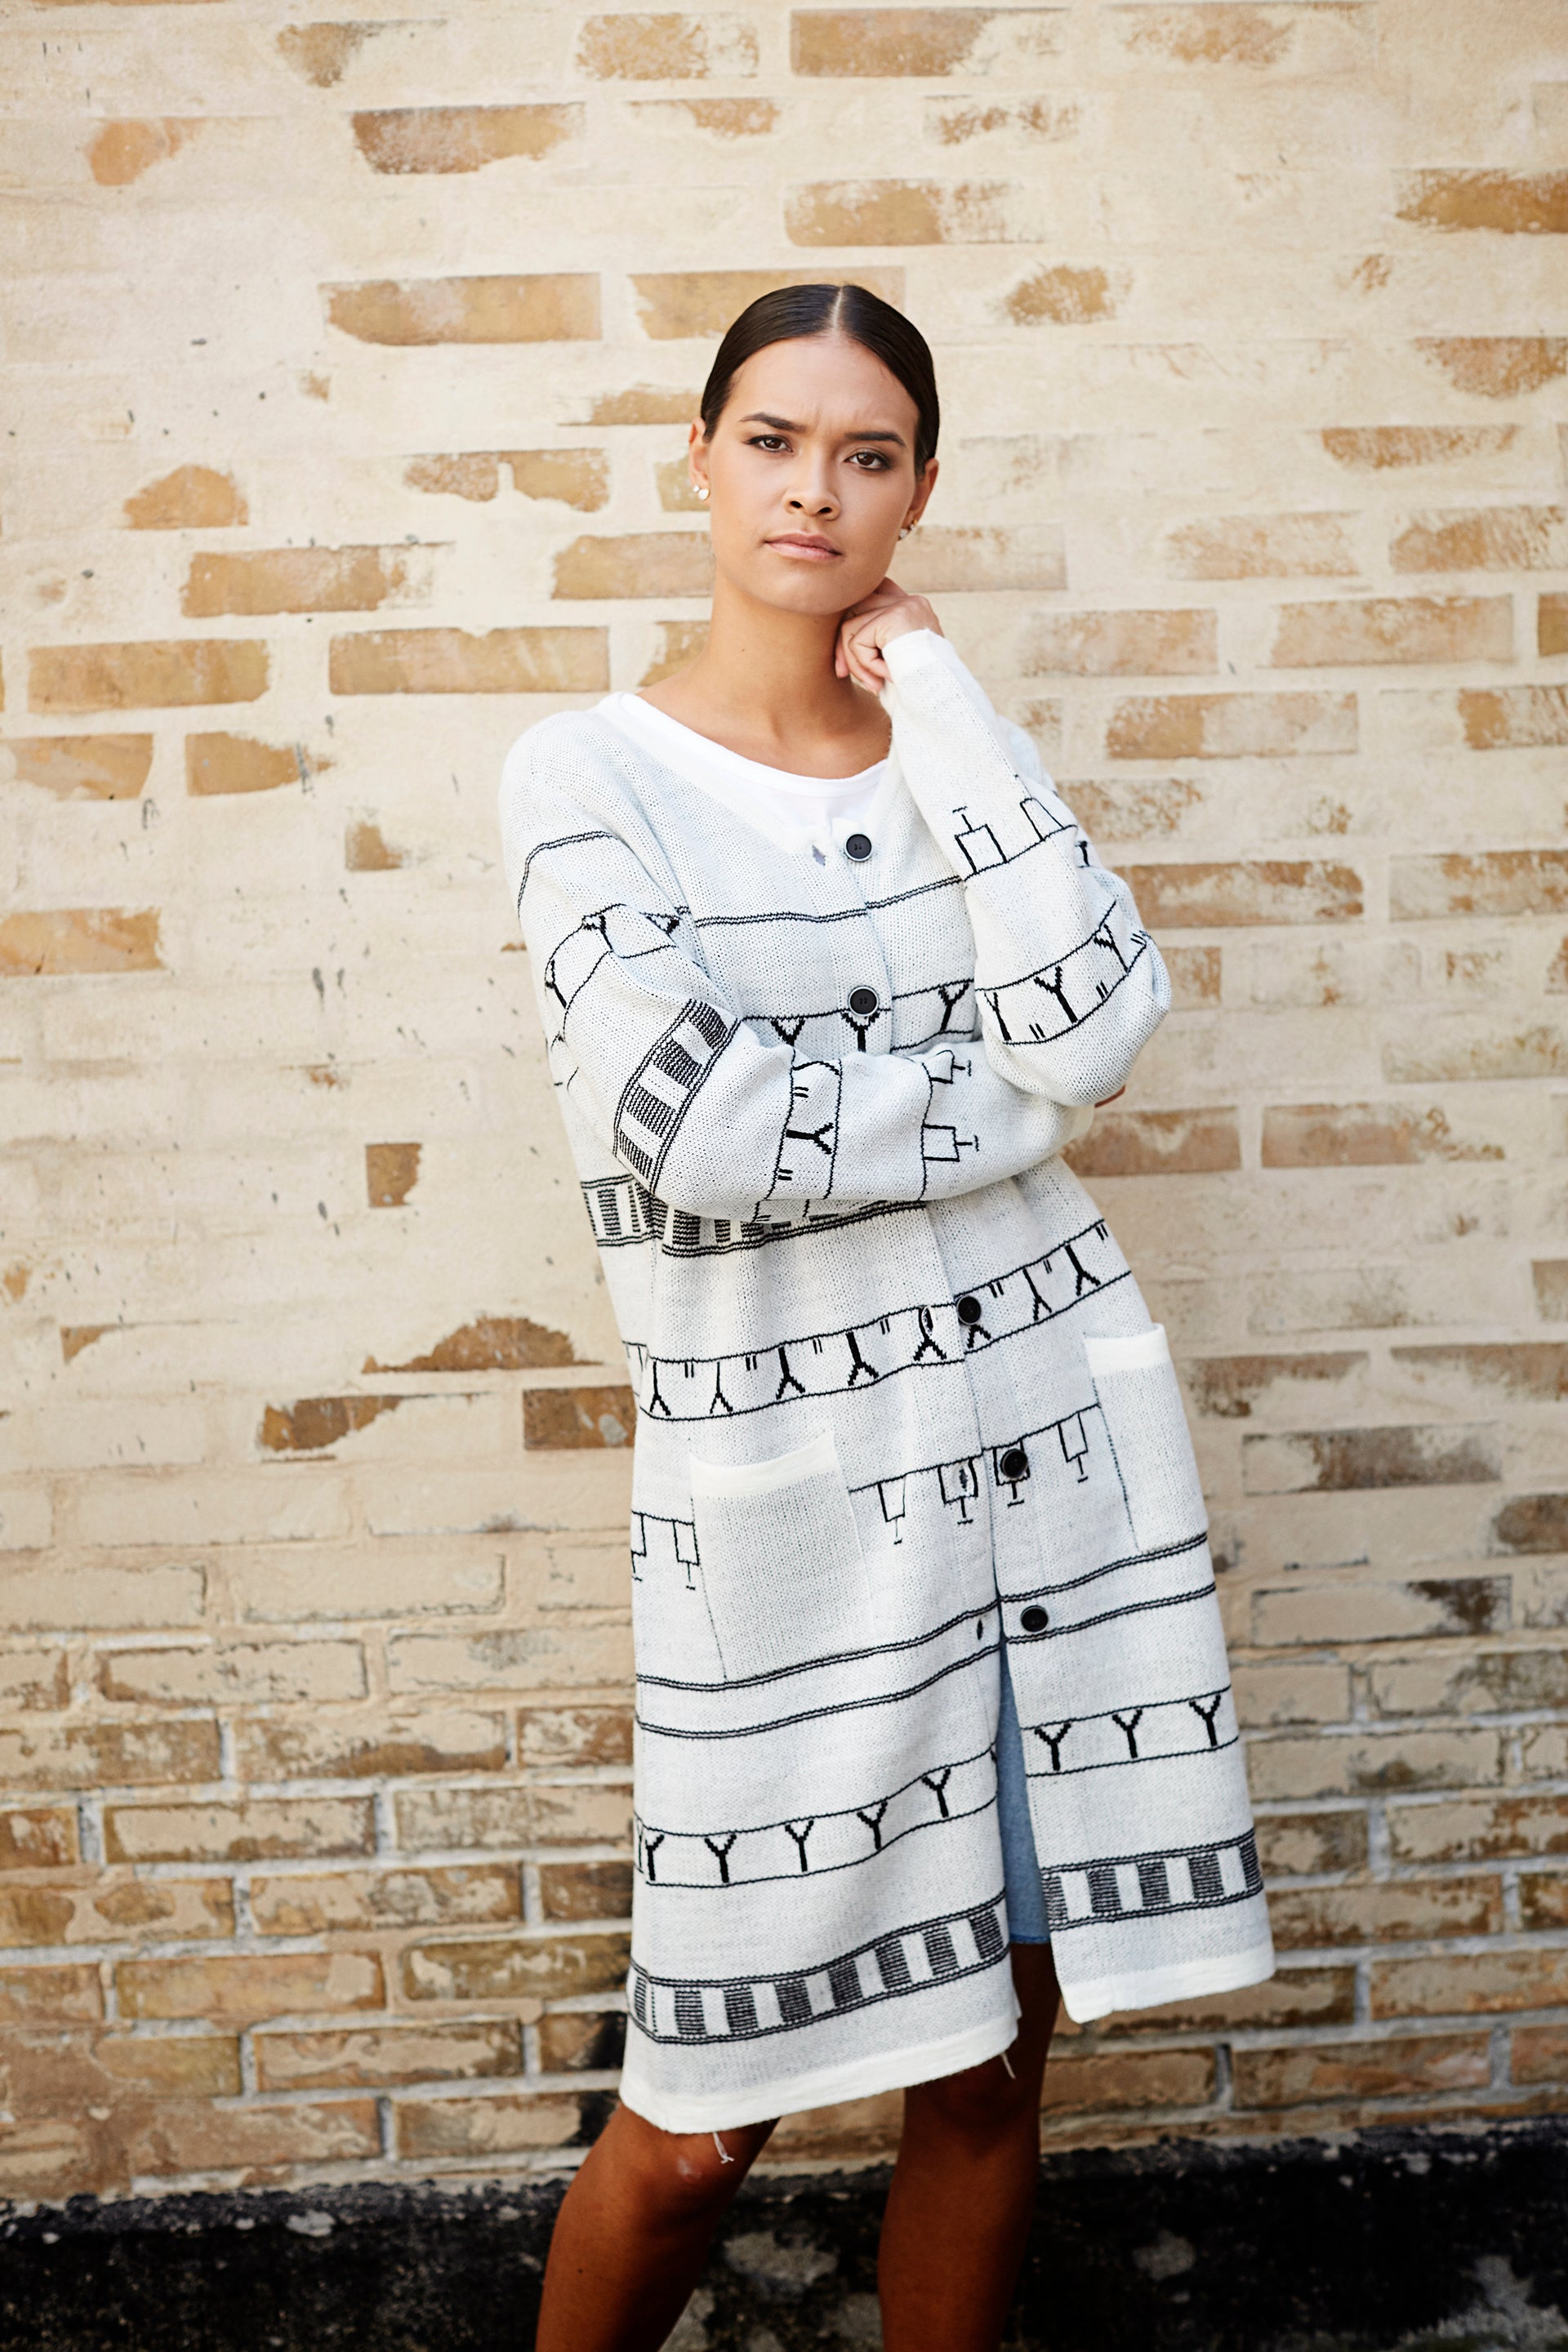 Ika Cardigan White - Isaksen design